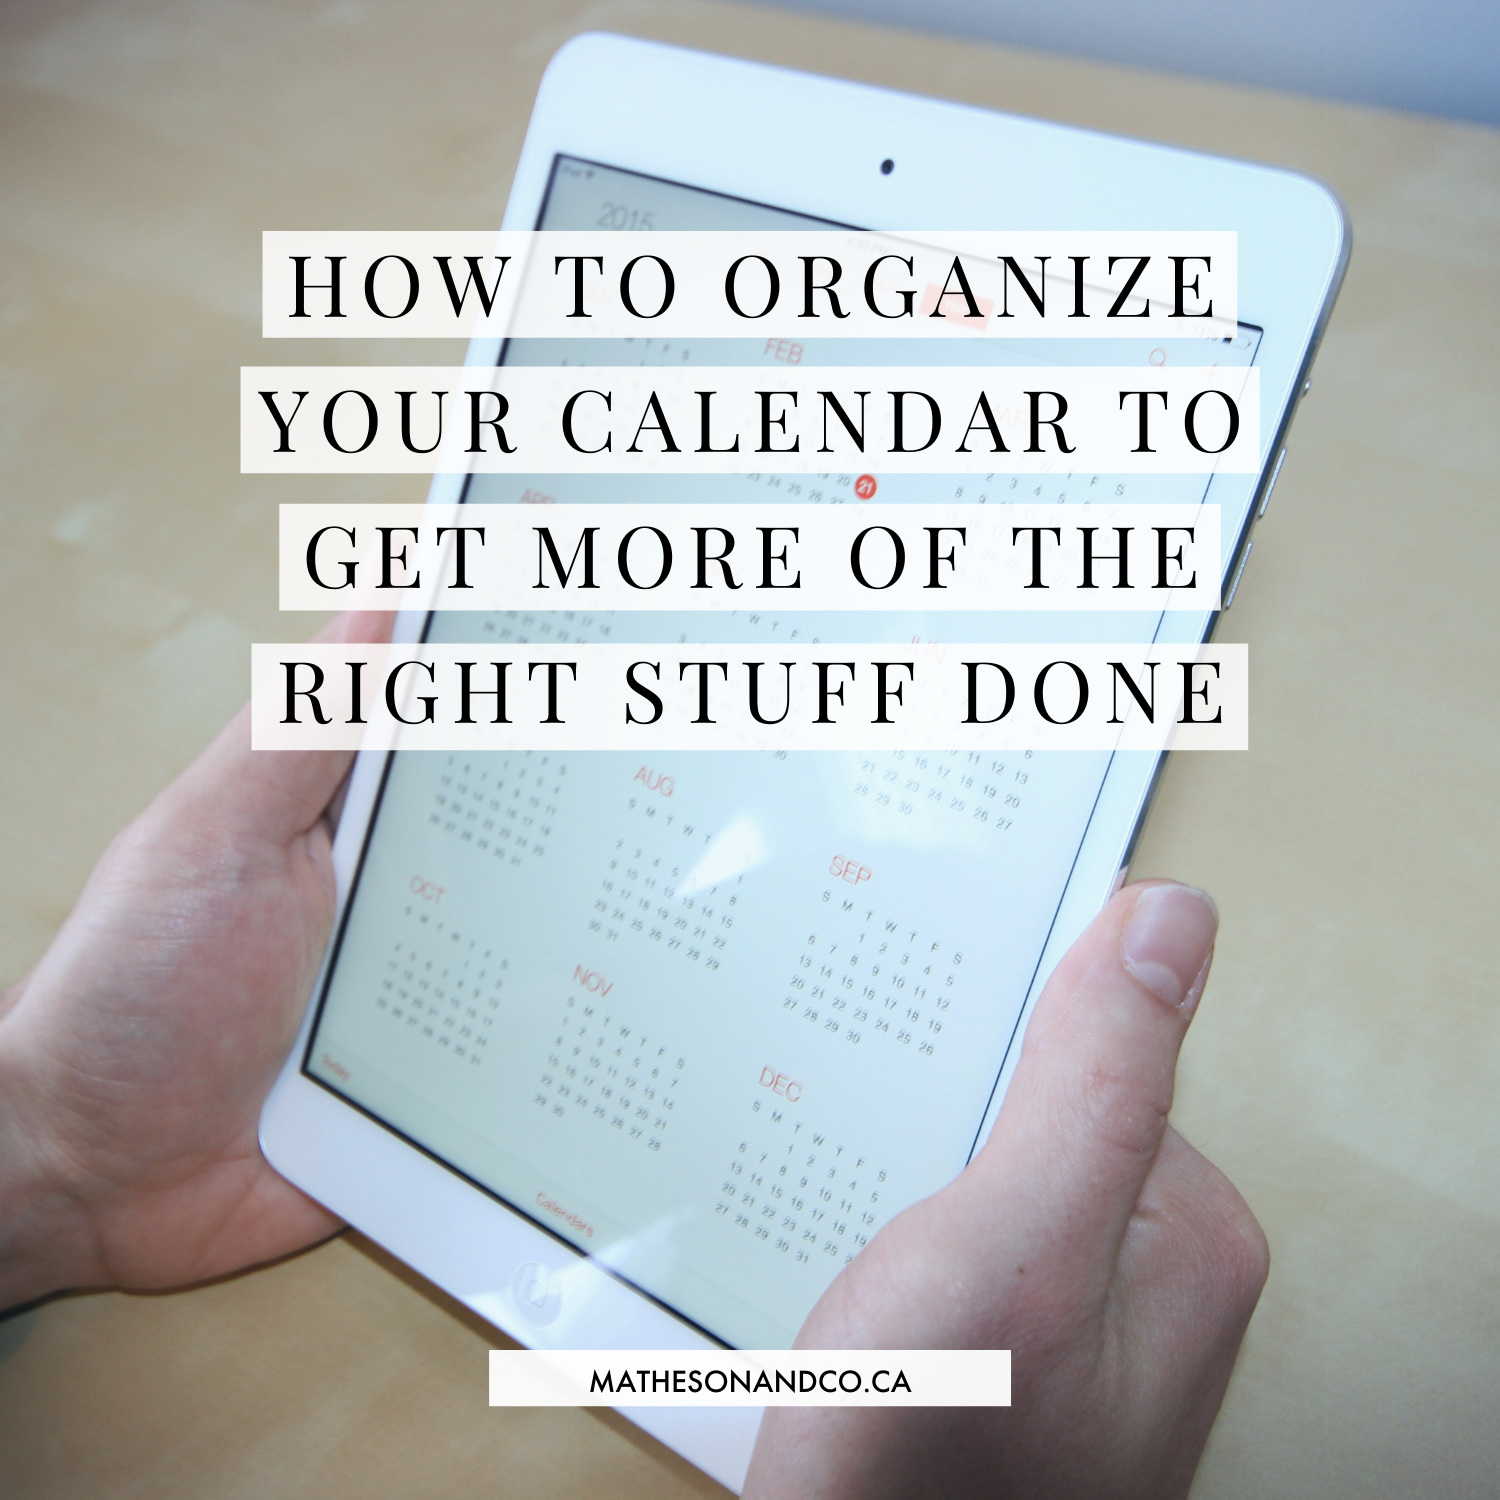 How to Organize Your Calendar to Get More of the Right Stuff Done